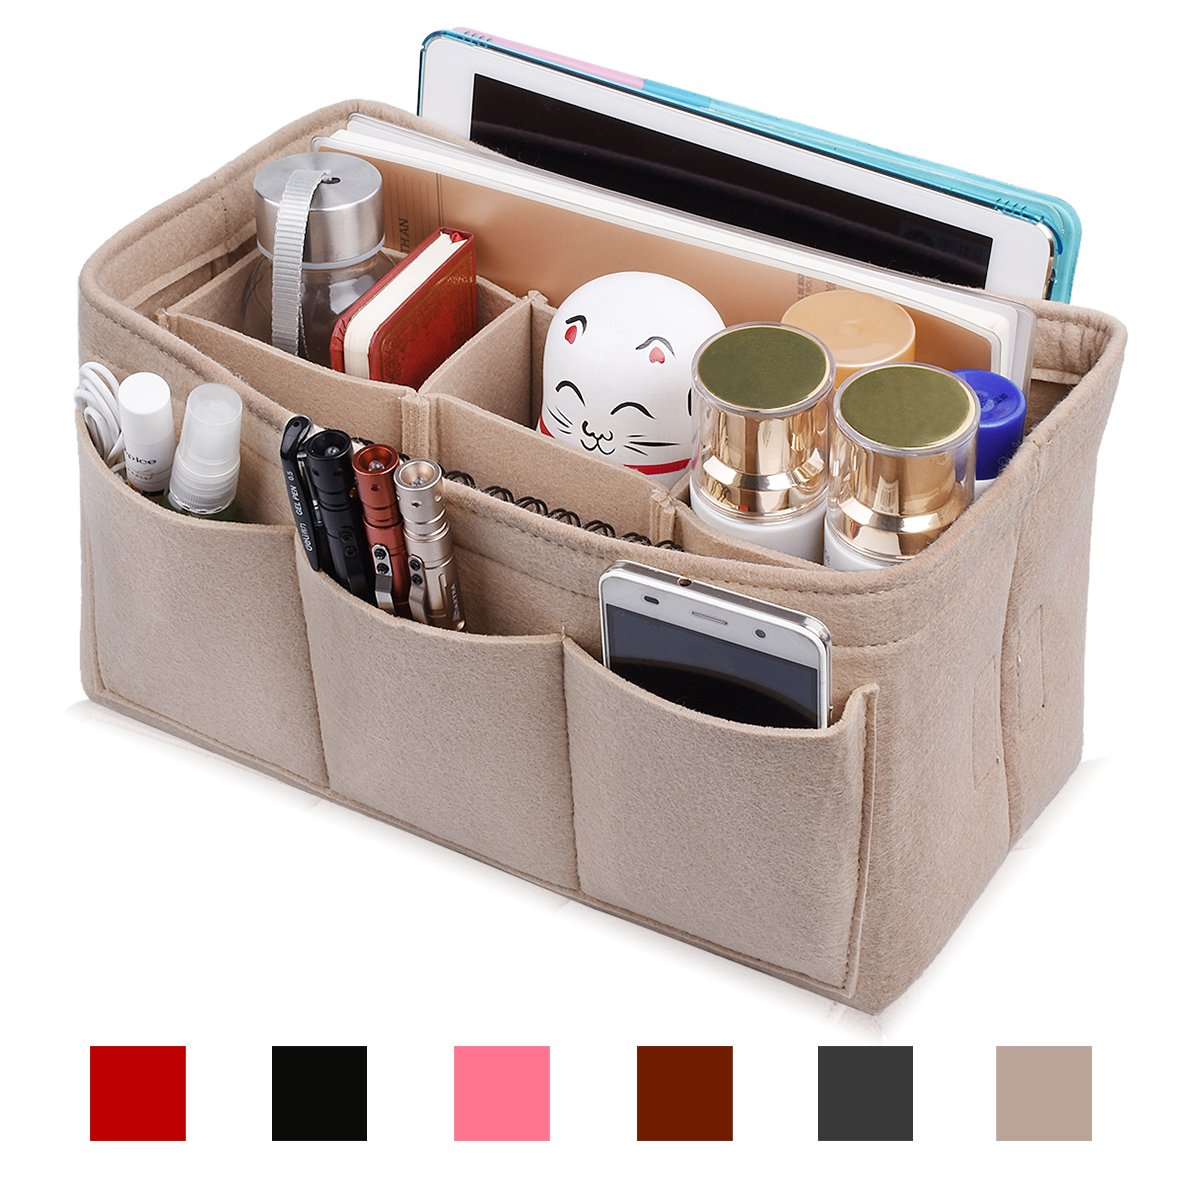 Hokeeper Felt Purse Insert Organizer, Handbag Organizer, Bag in Bag for Handbag Purse Tote, Diaper Bag Organizer, Stand on Its Own,10 Compartments, 4 Sizes, 6 Colors by Hokeeper